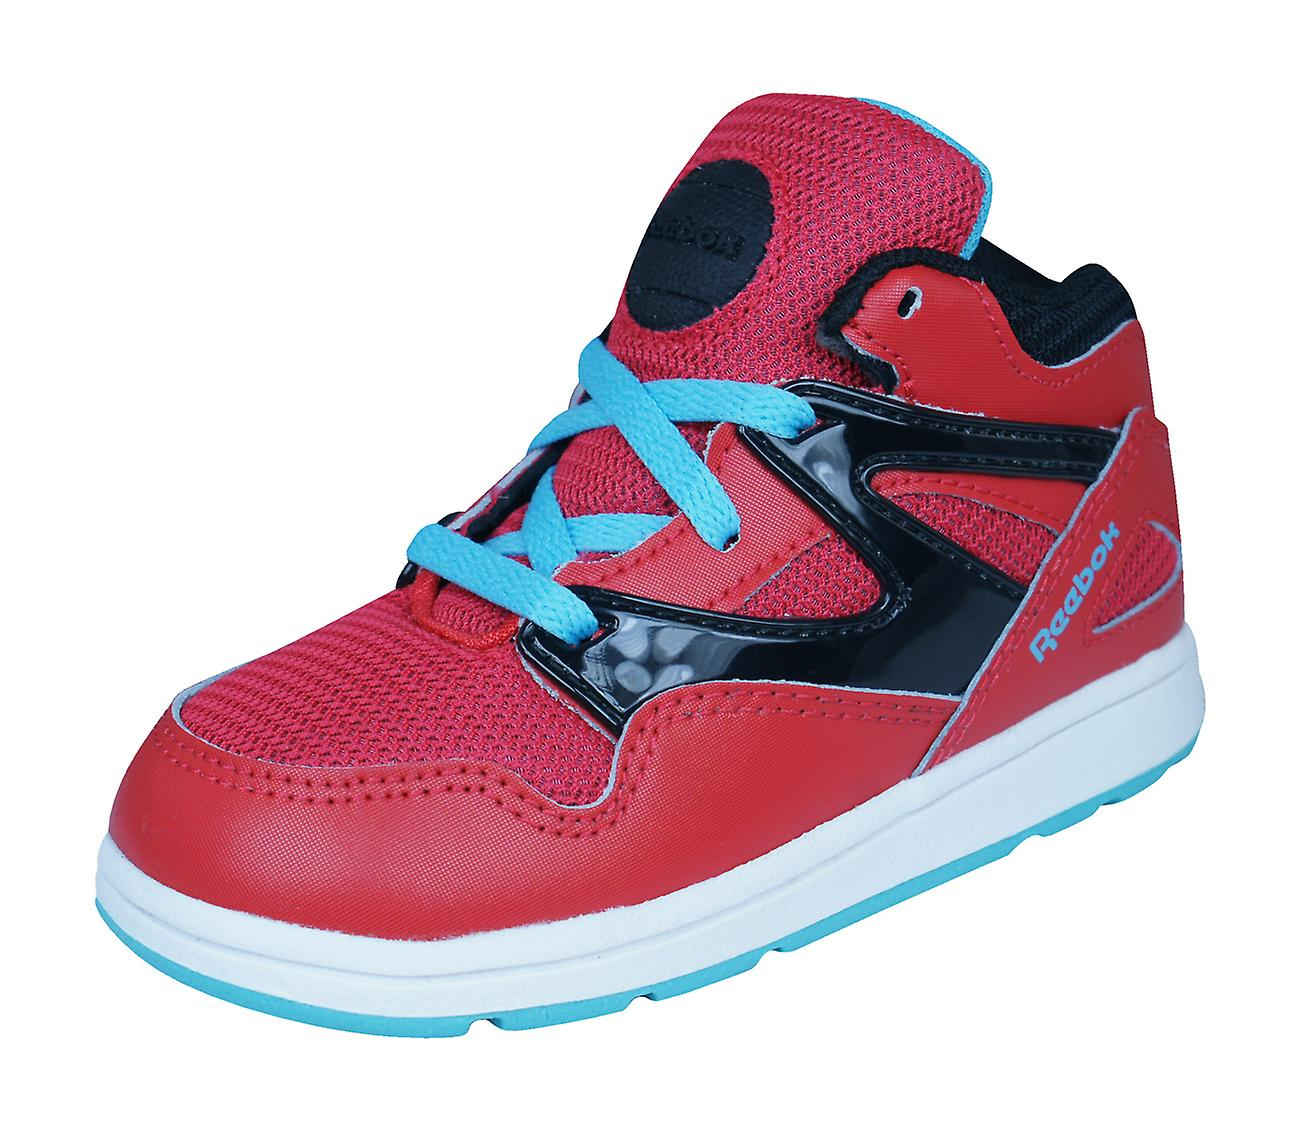 65b7375a15752d Reebok Classic Versa Pump Omnilite Kids   Trainers   Shoes - Red ...